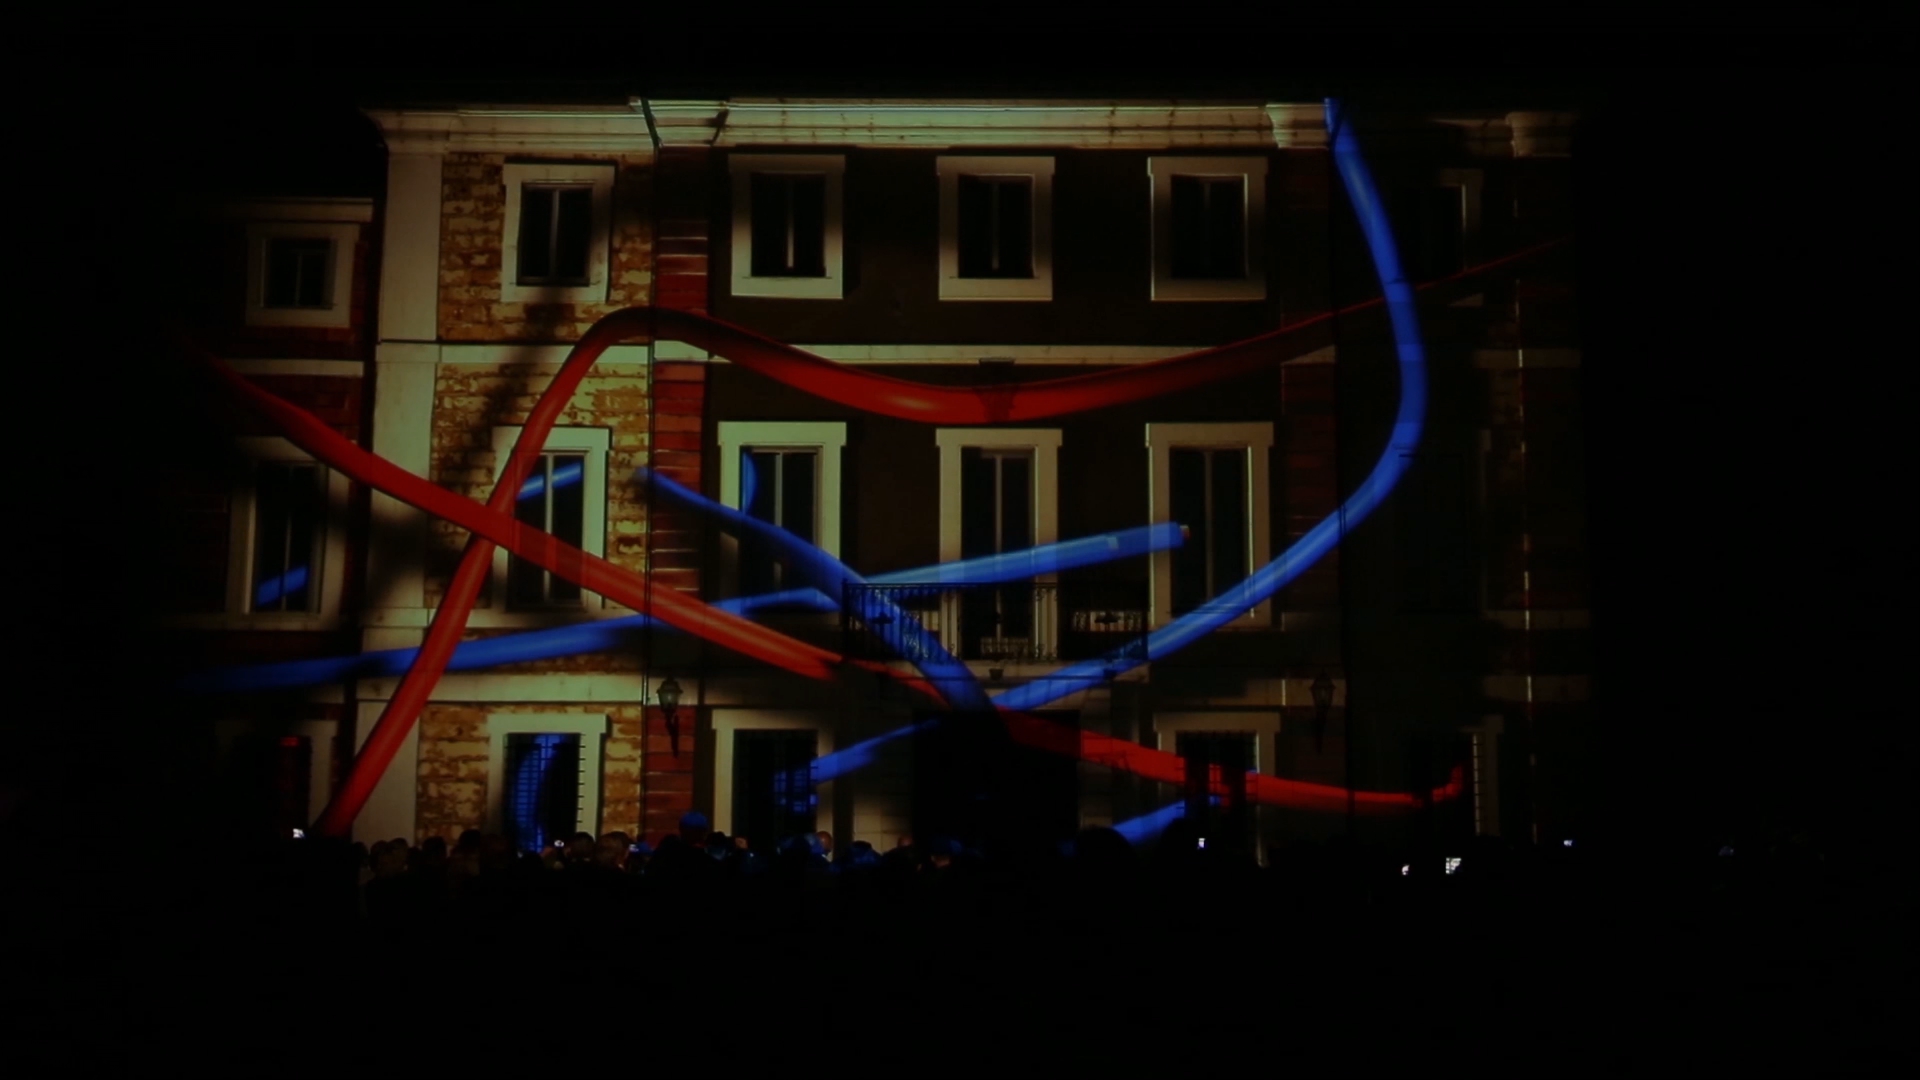 Morlacco-50years-Full-Video-_-Video-Mapping-0-01-11-09.png